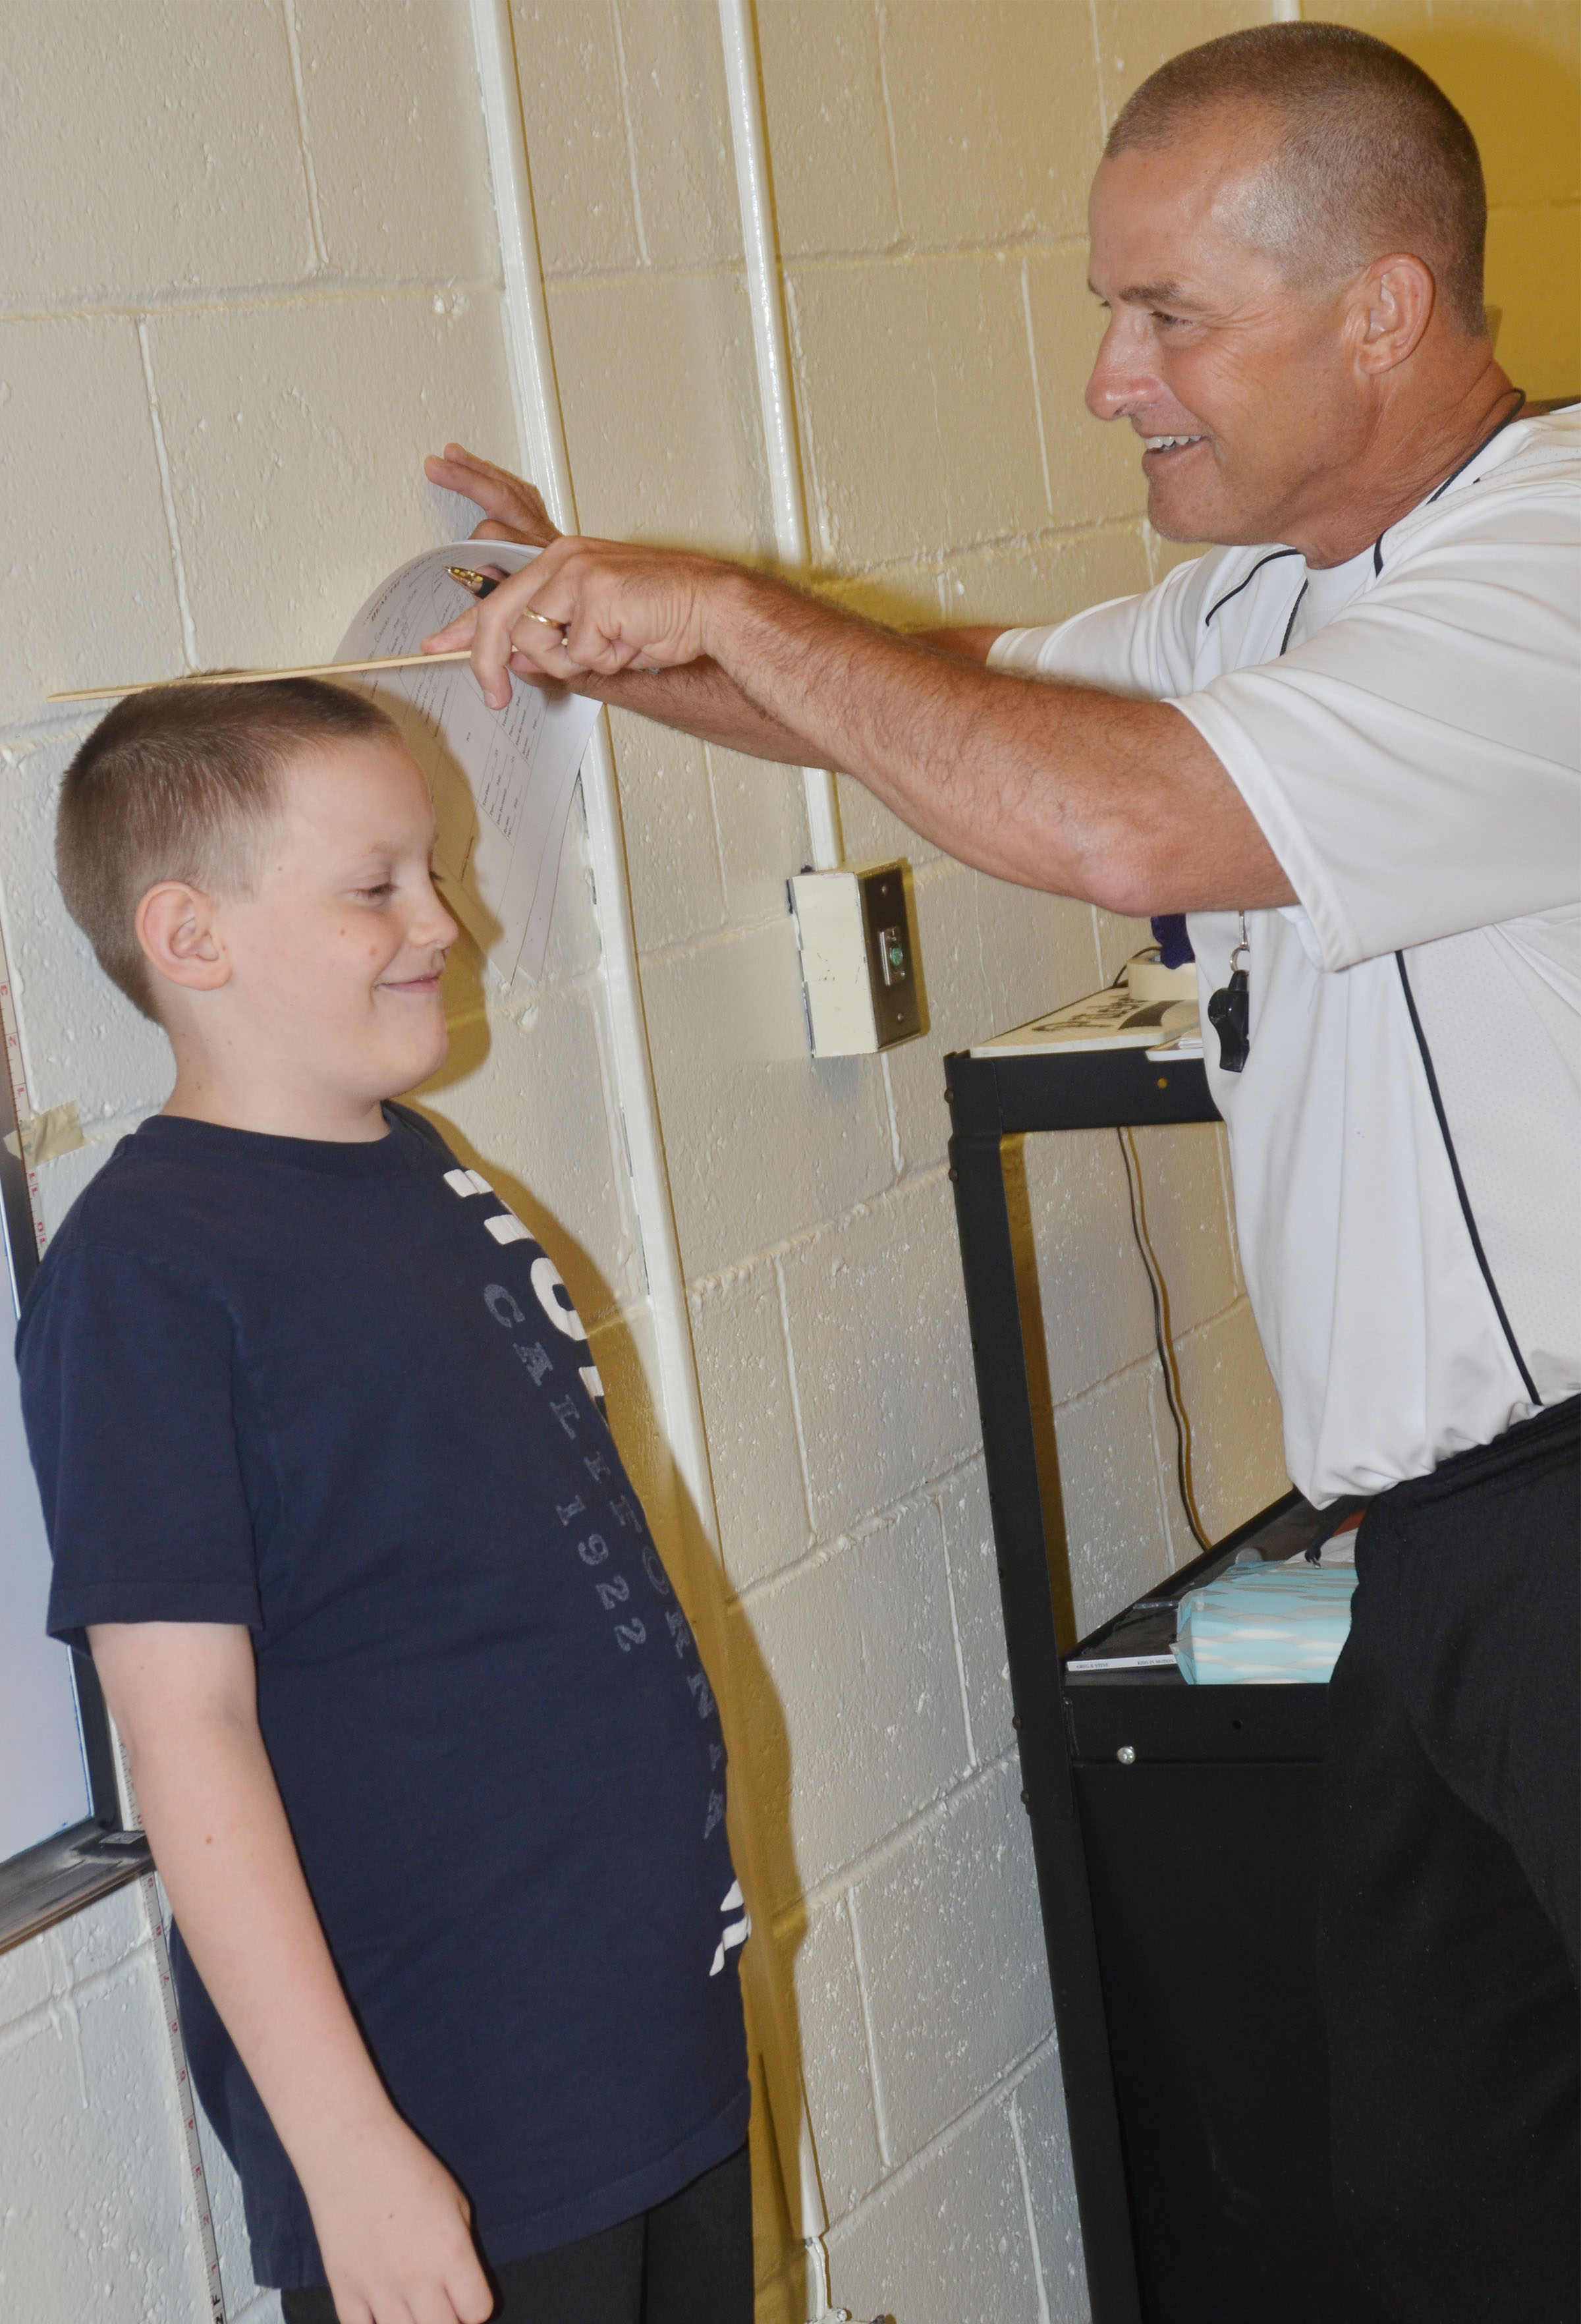 CES physical education teacher Lynn Kearney records third-grader Bobby Engle's height.